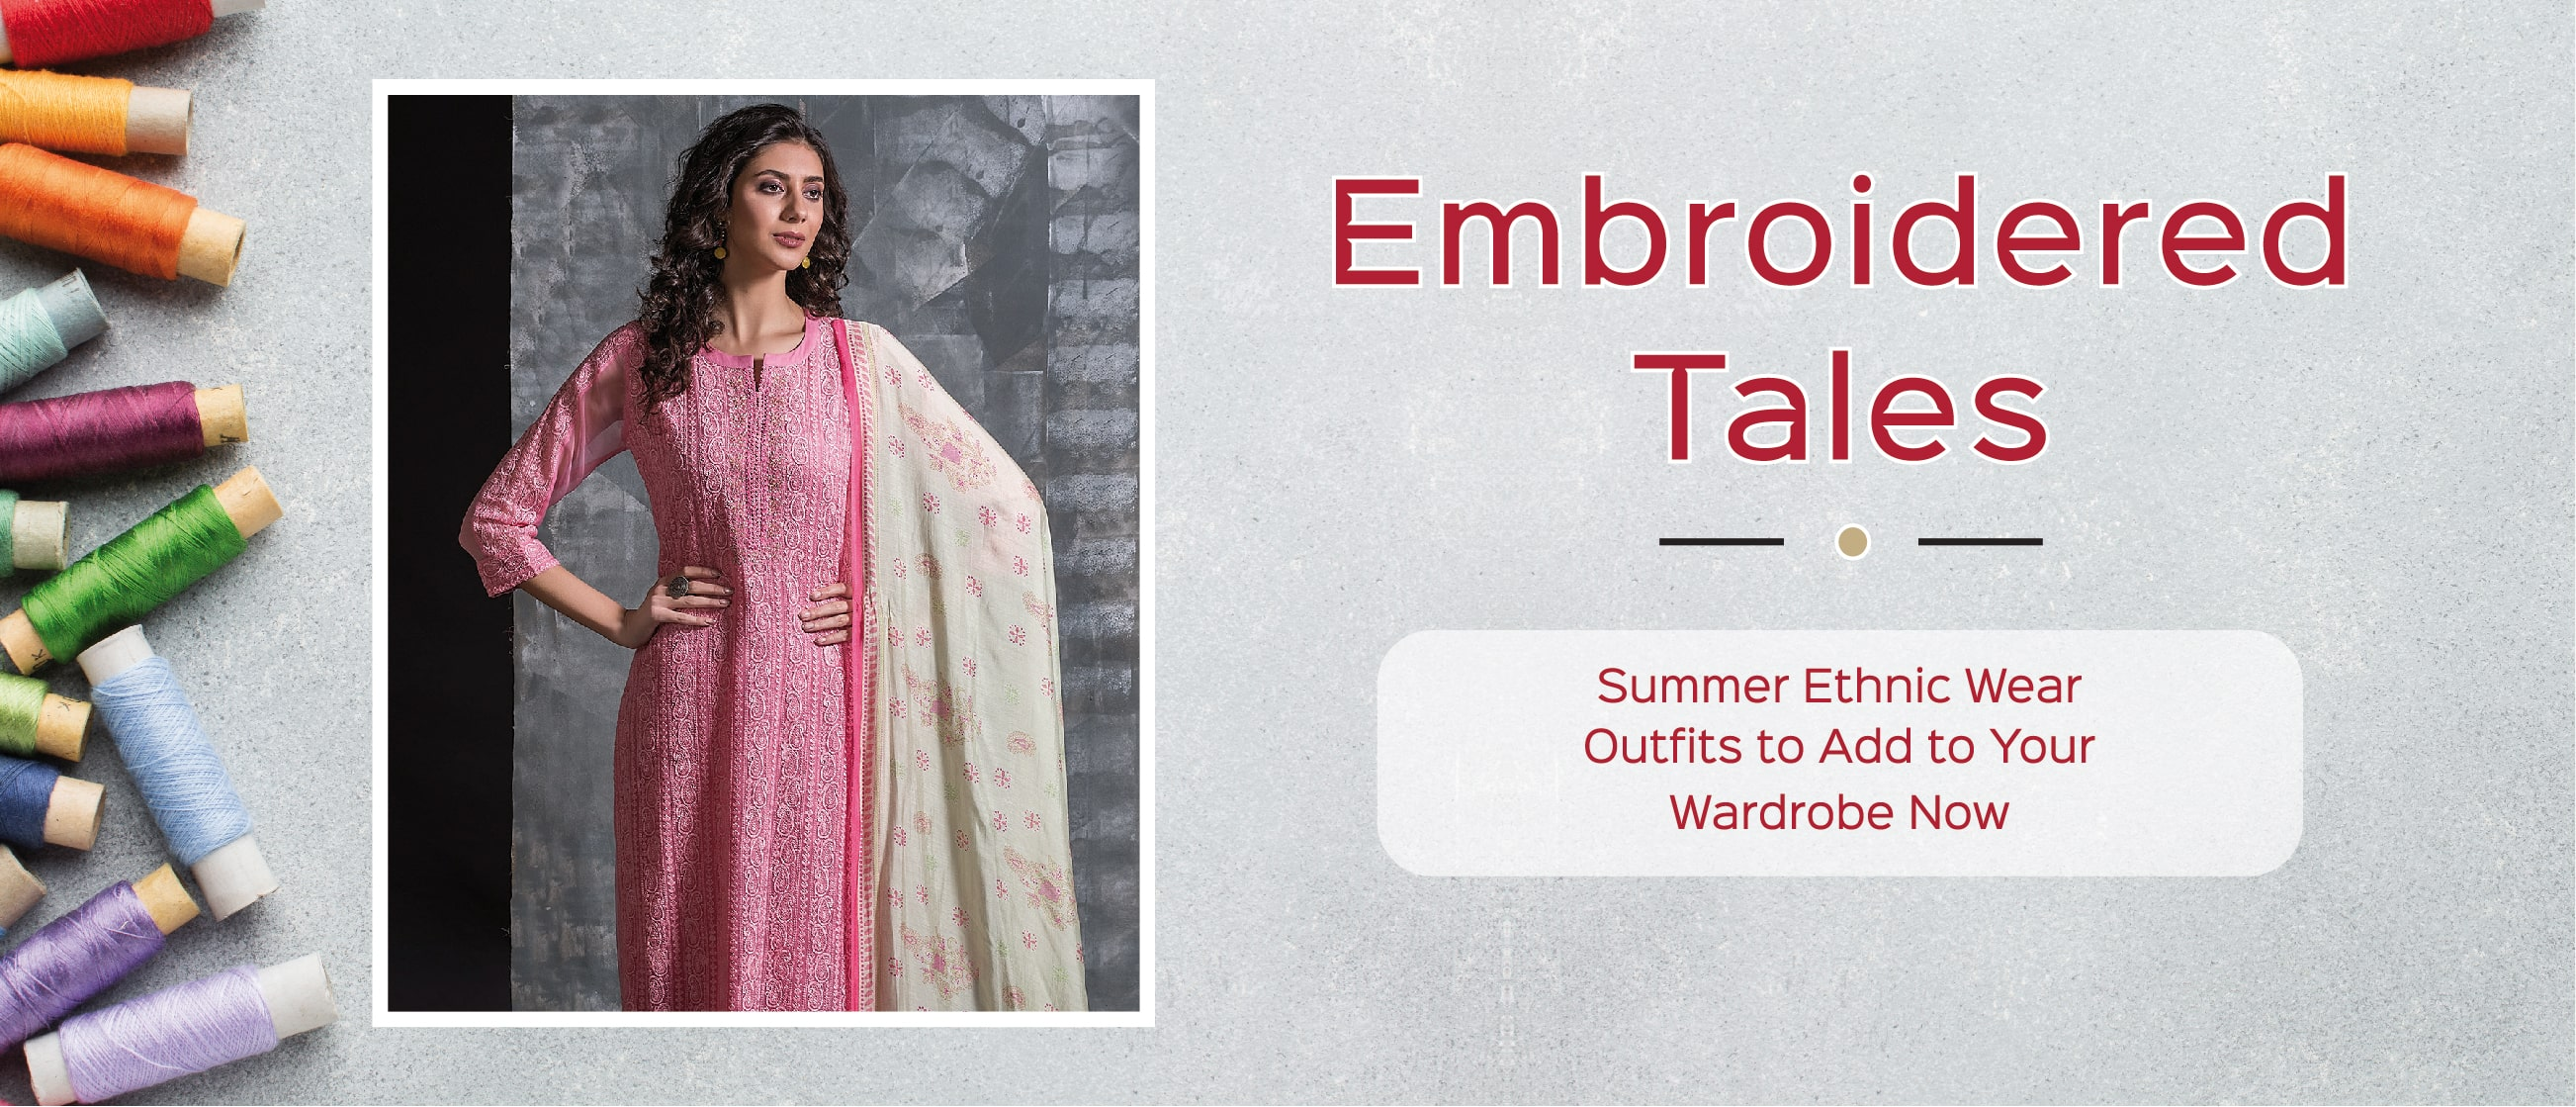 Embroidered Tales: Summer Ethnic Wear Outfits to Add to Your Wardrobe Now